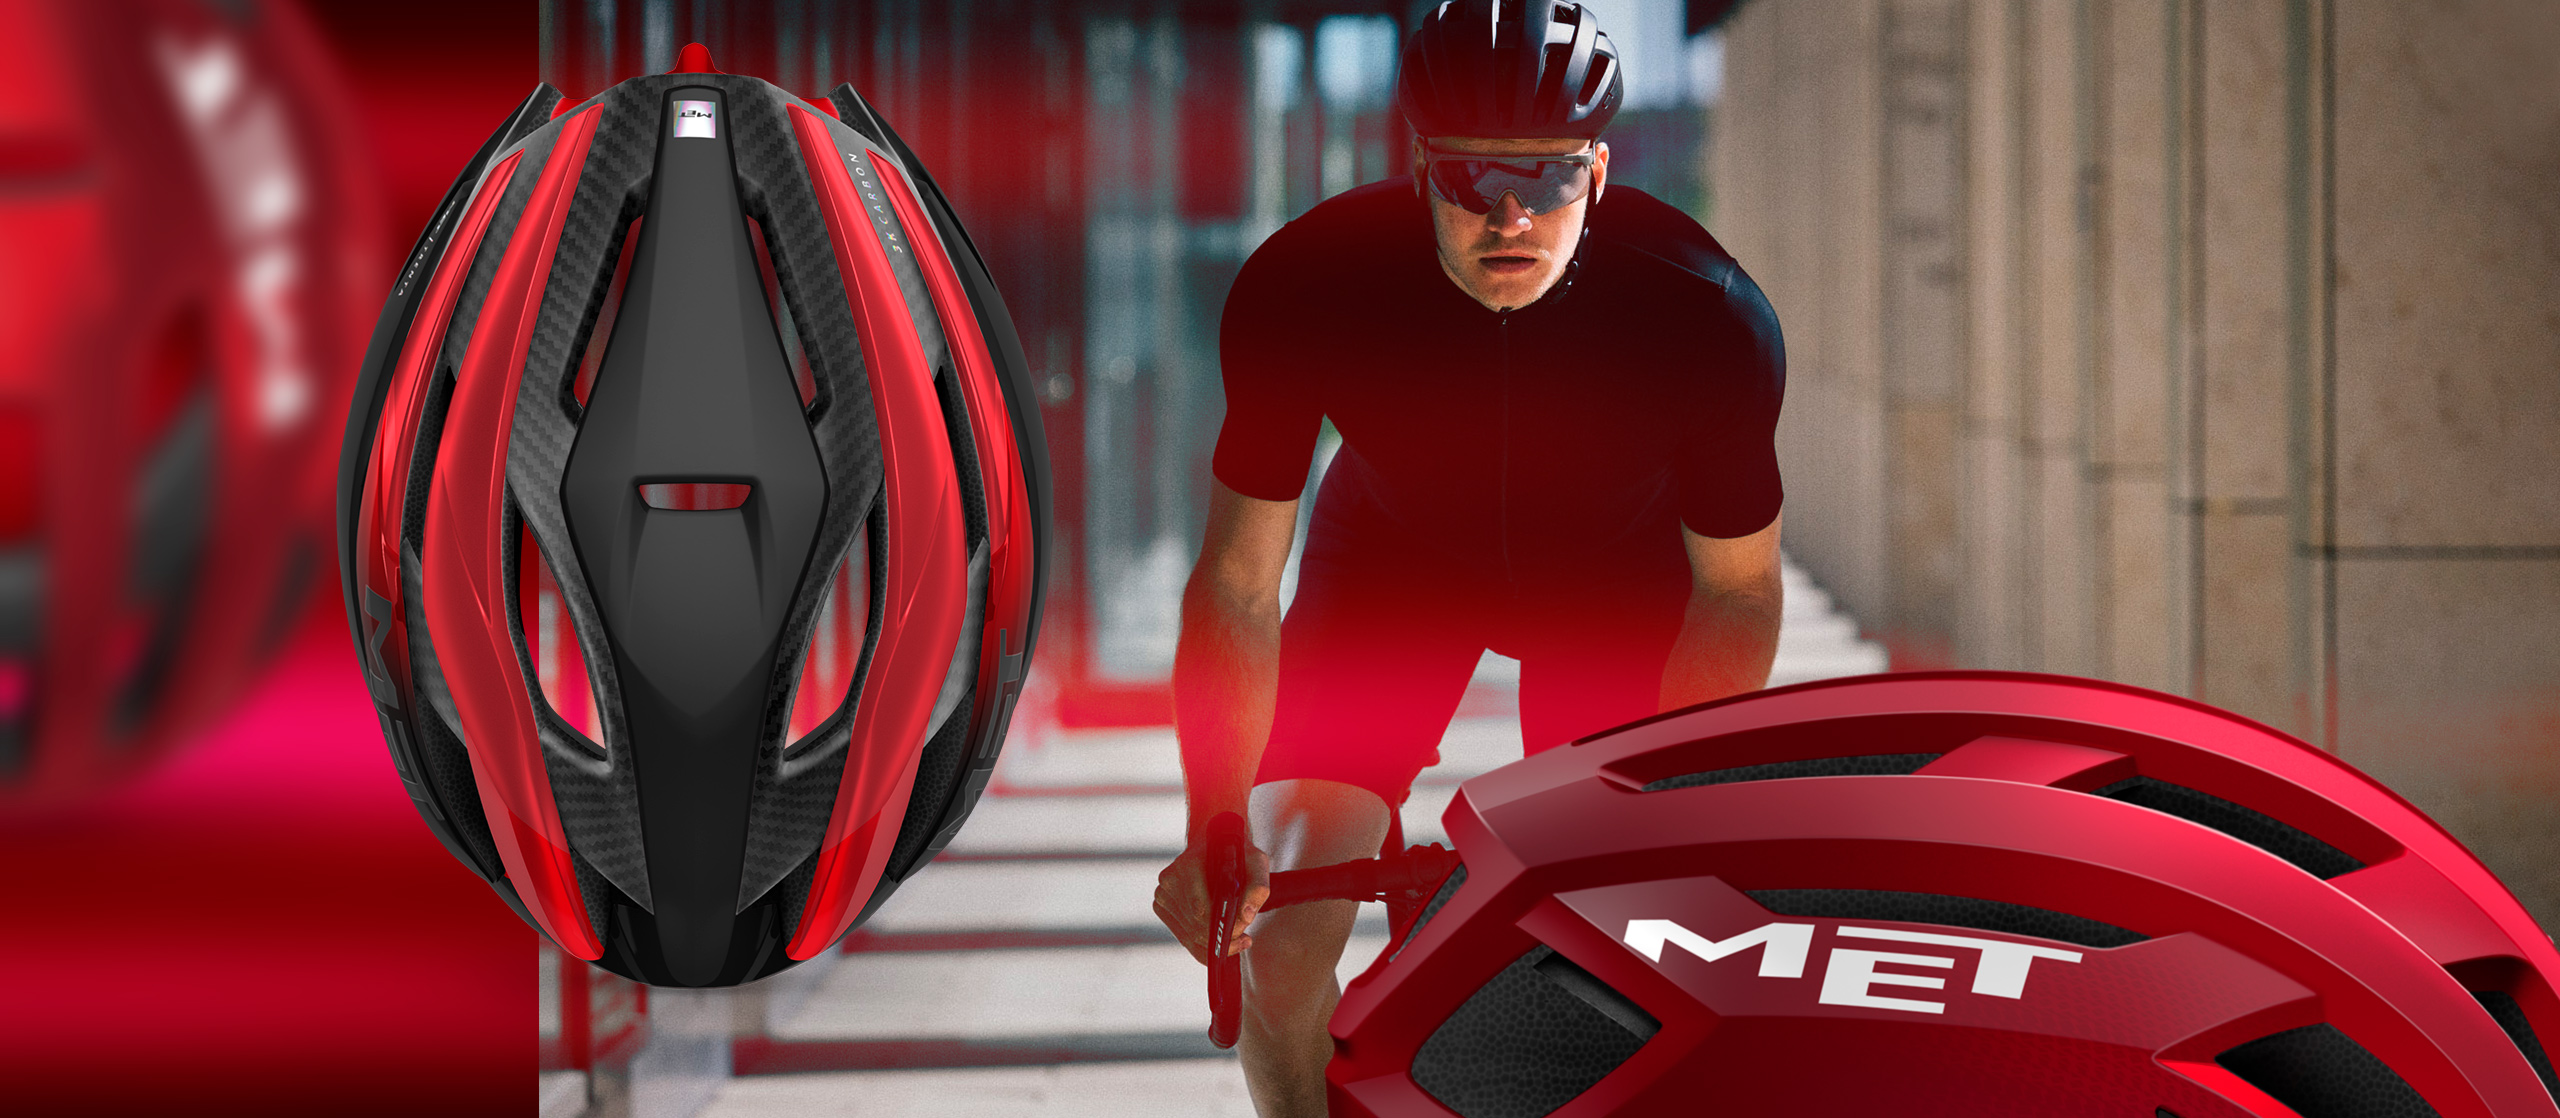 MET Helmets Specialists in road cycling helmets